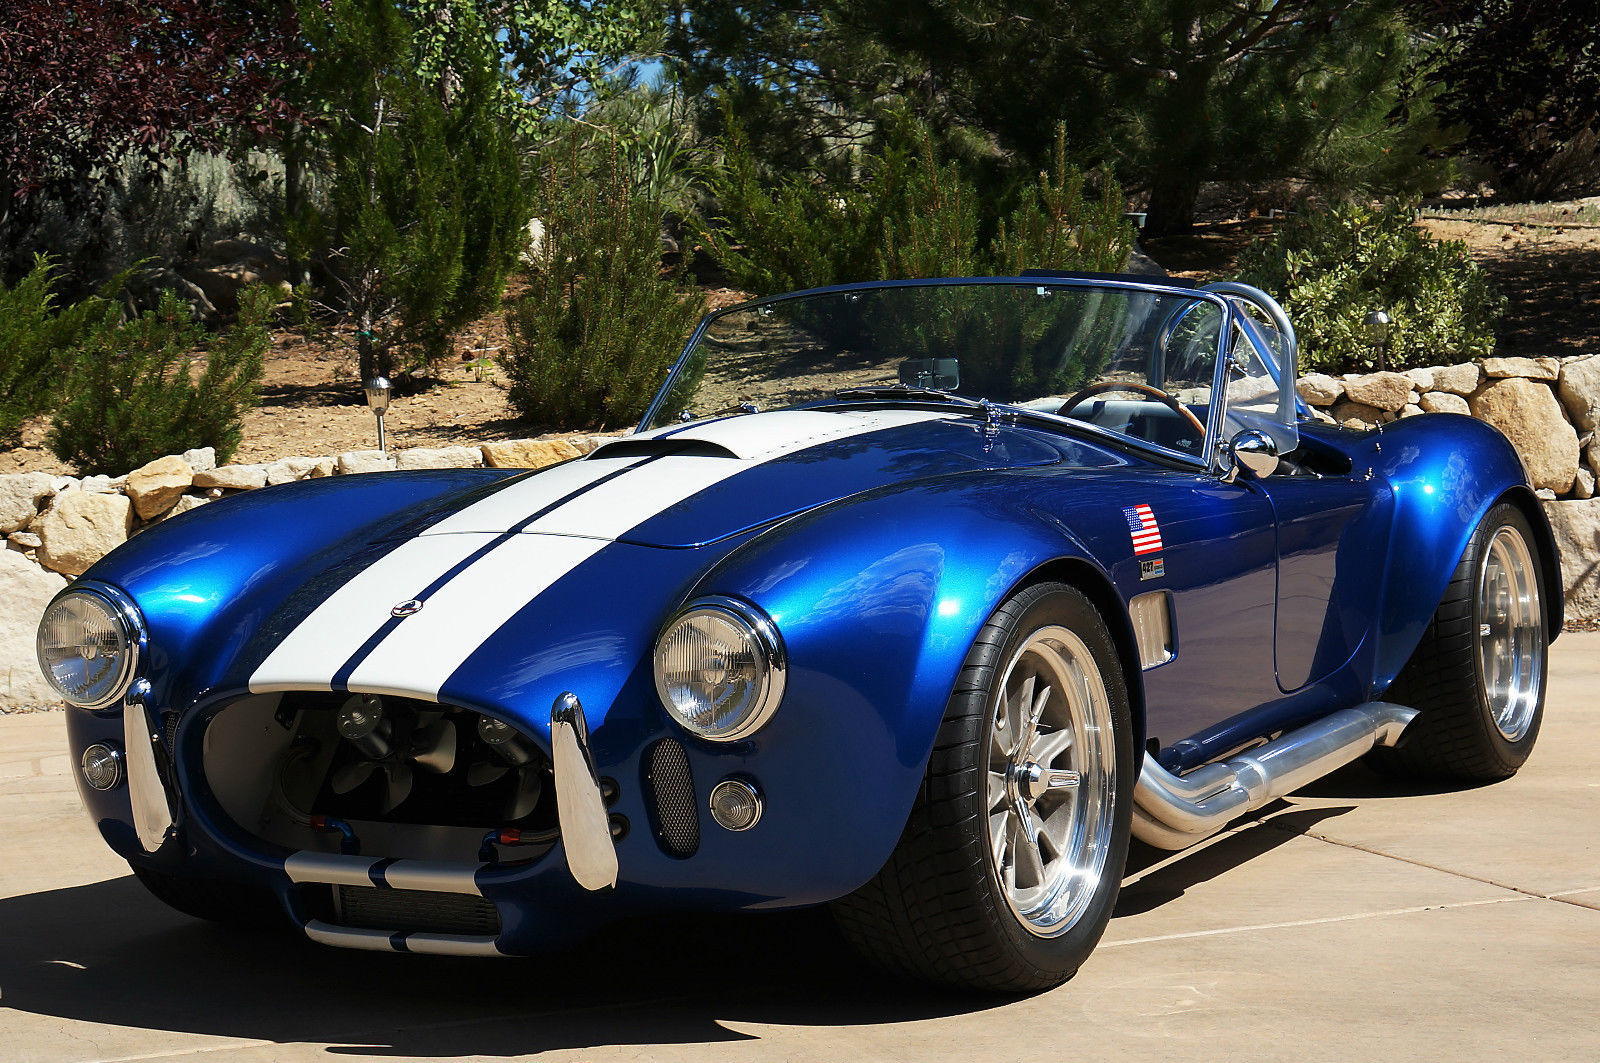 Car Colors List News Of New Release And Reviews 1987 Yamaha Seca Xj 750 Wire Diagram Wiring Era 1965 Shelby Cobra Replica Era430 Blue